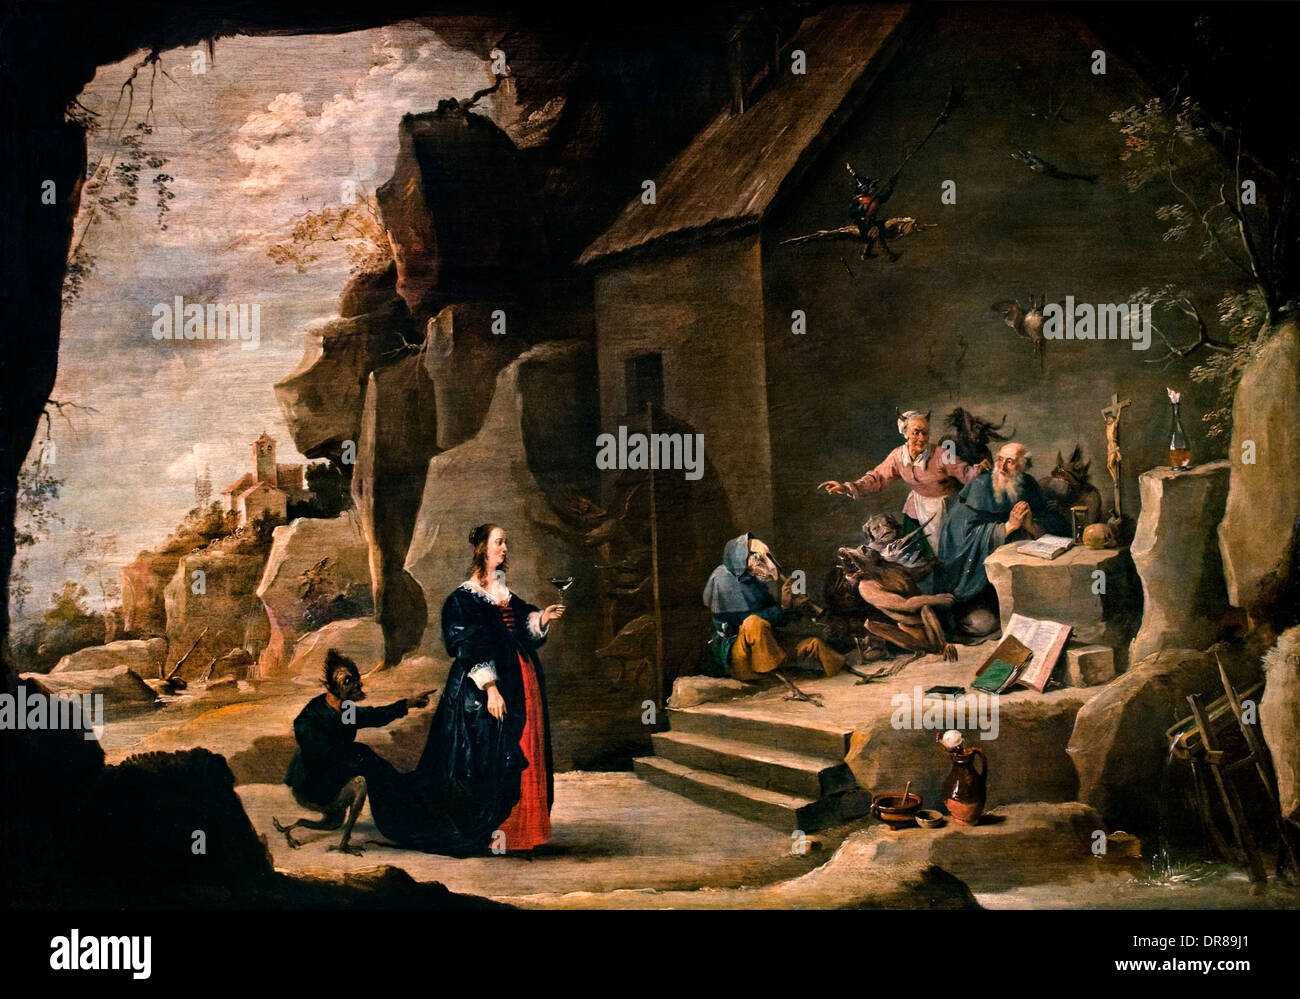 The temptation of Saint Anthony by David Teniers the Younger 1610-1690 Belgian Belgium Flemish - Stock Image